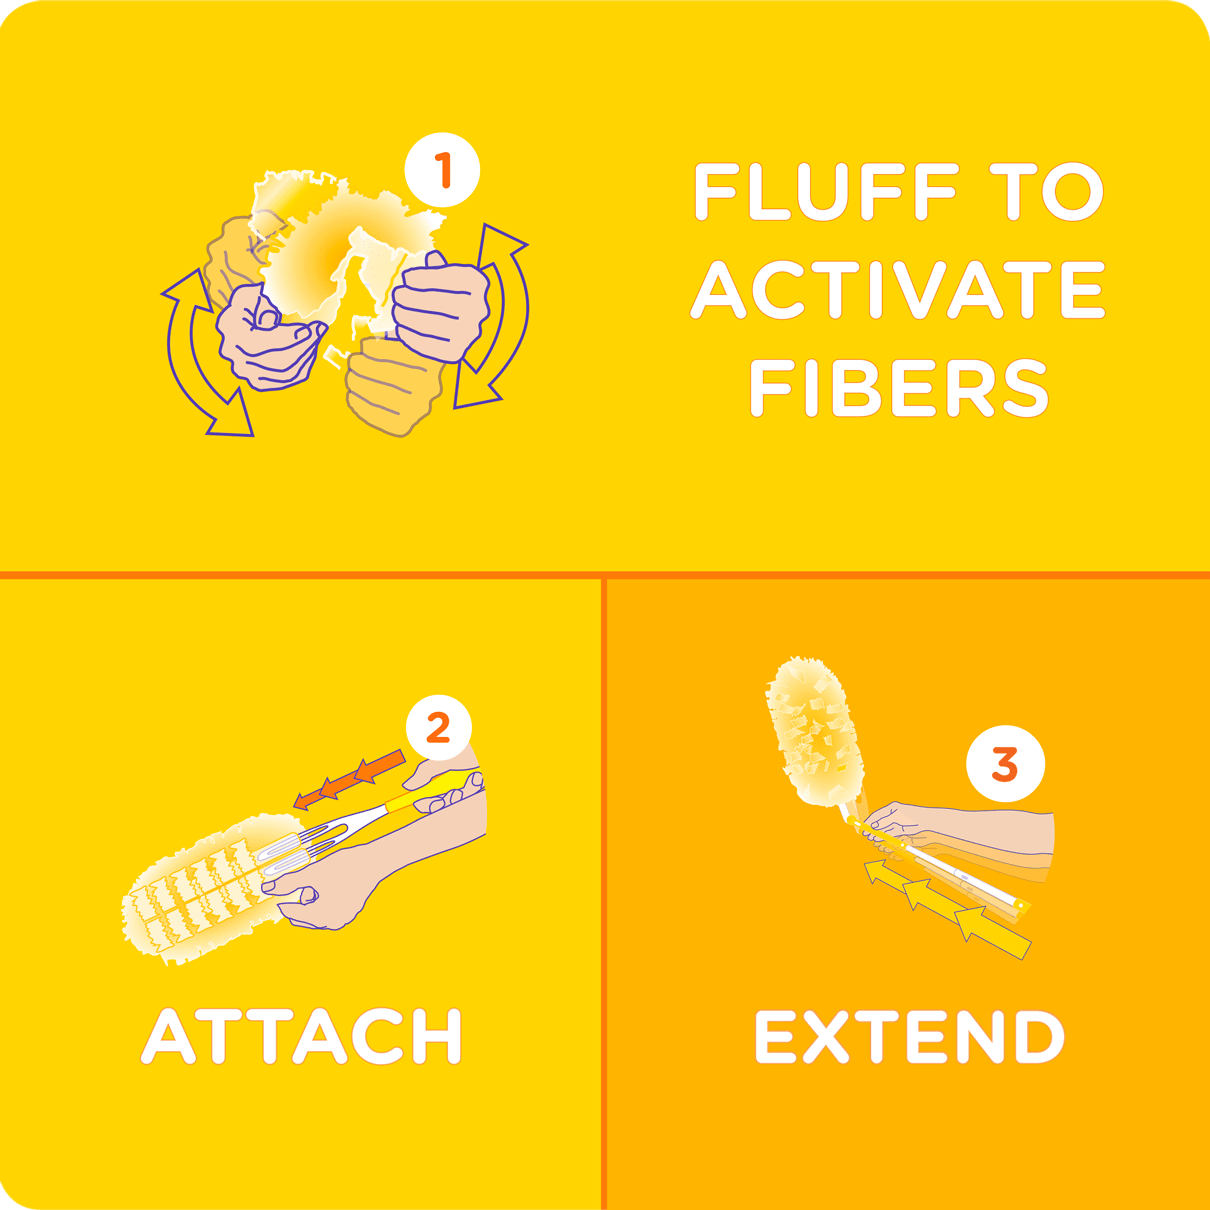 Swiffer Duster Heavy Duty Extender Instructions